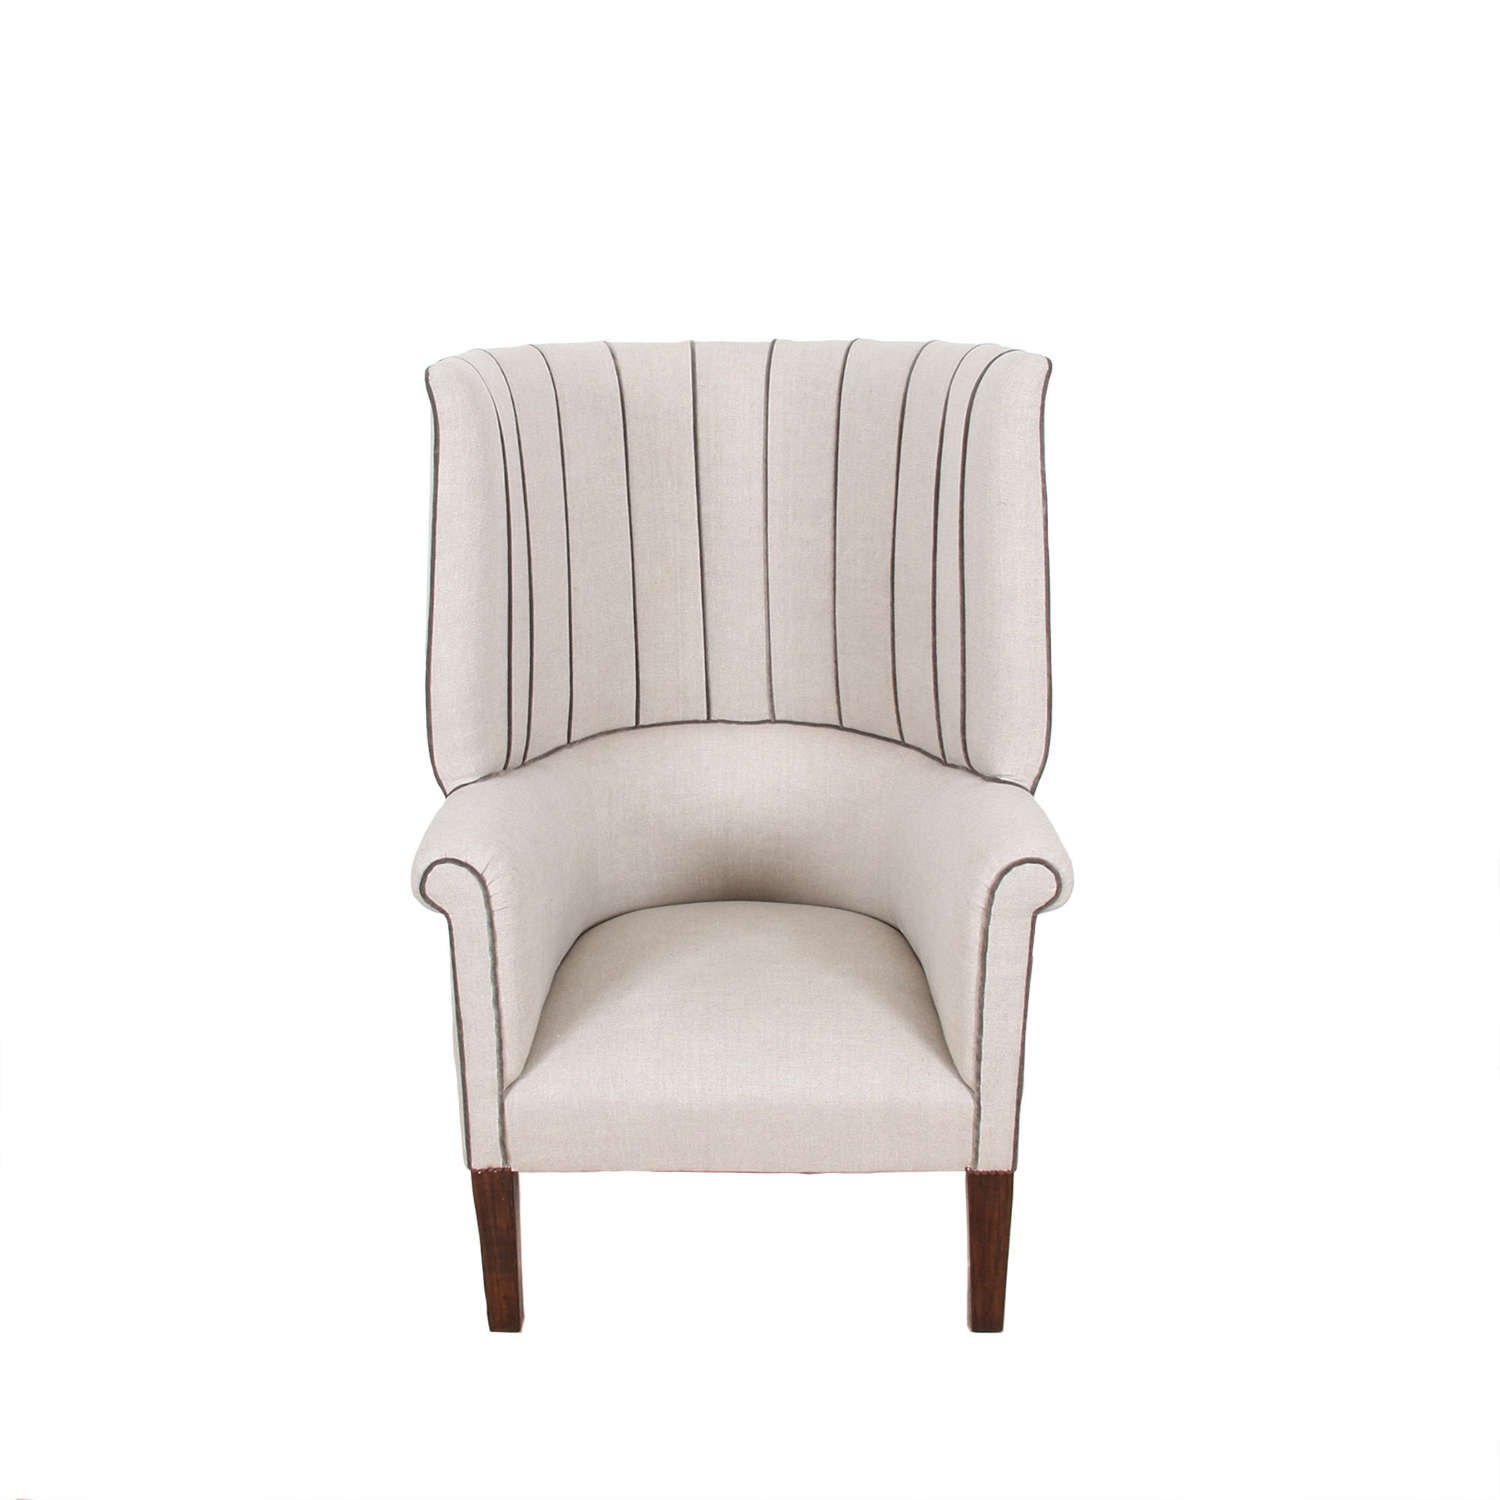 Early 20th Century English Wingback Armchair